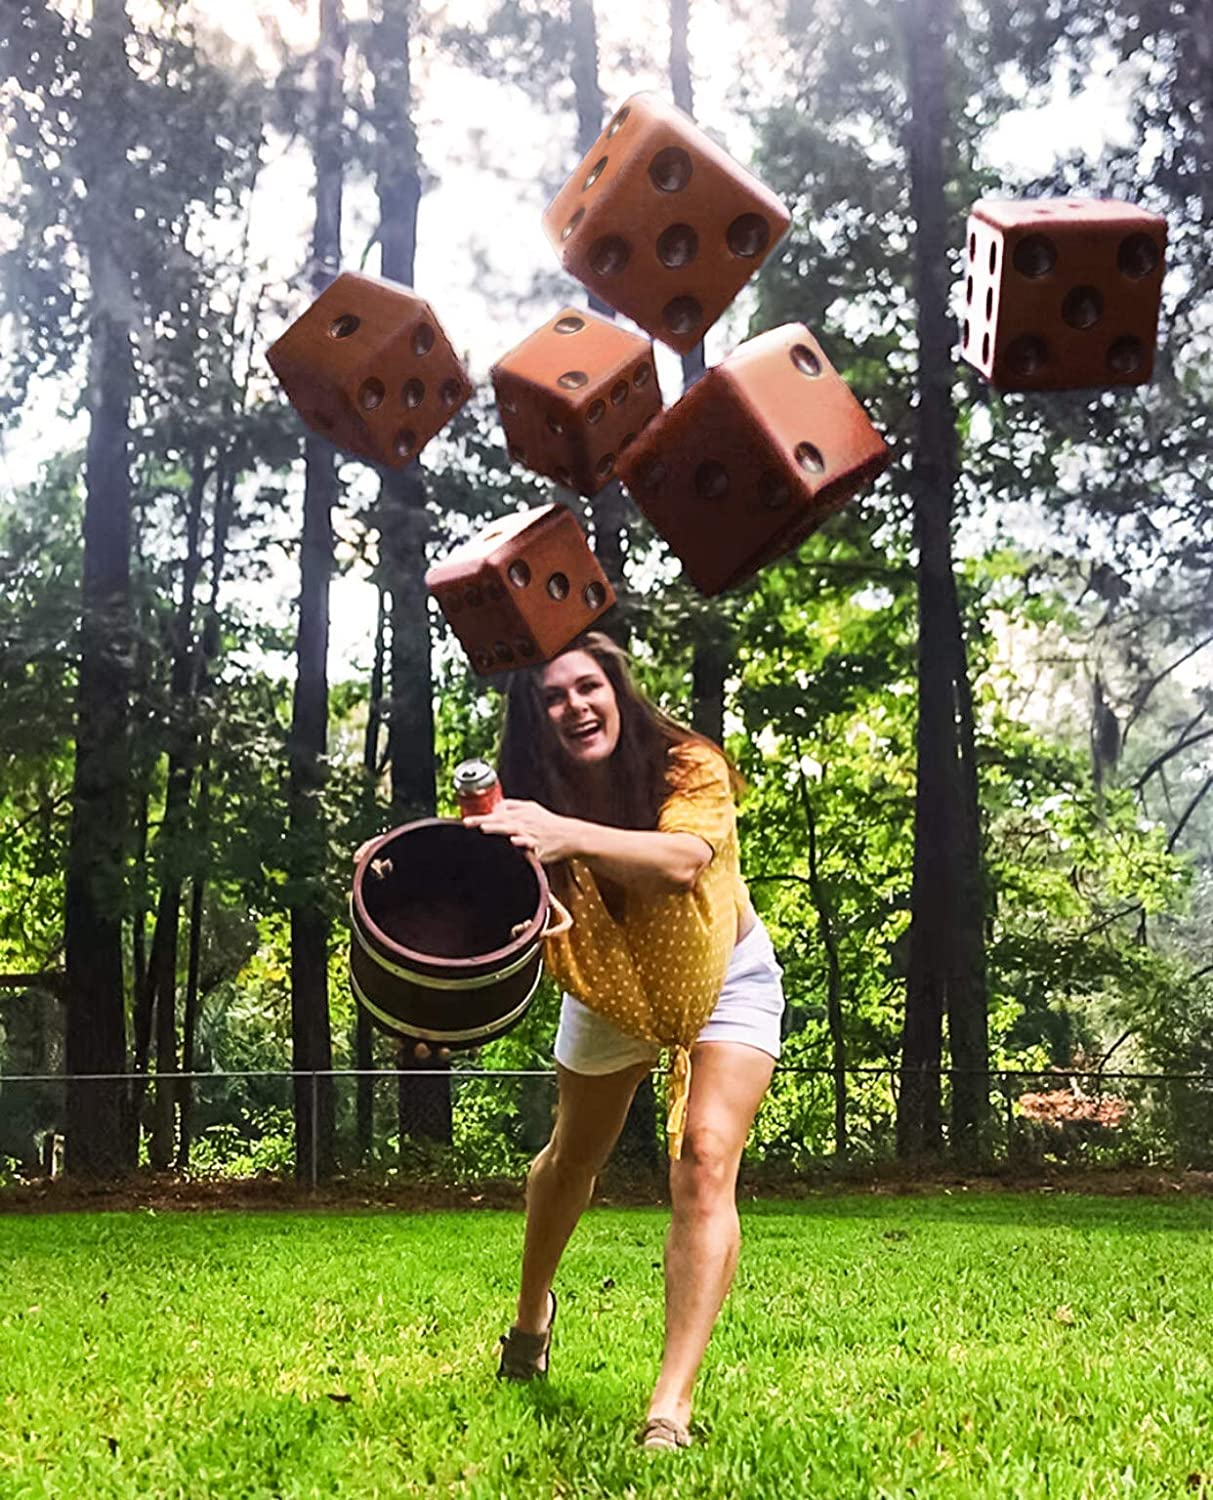 FARKLE FOR THE LAWN A WOODEN DICE GAME